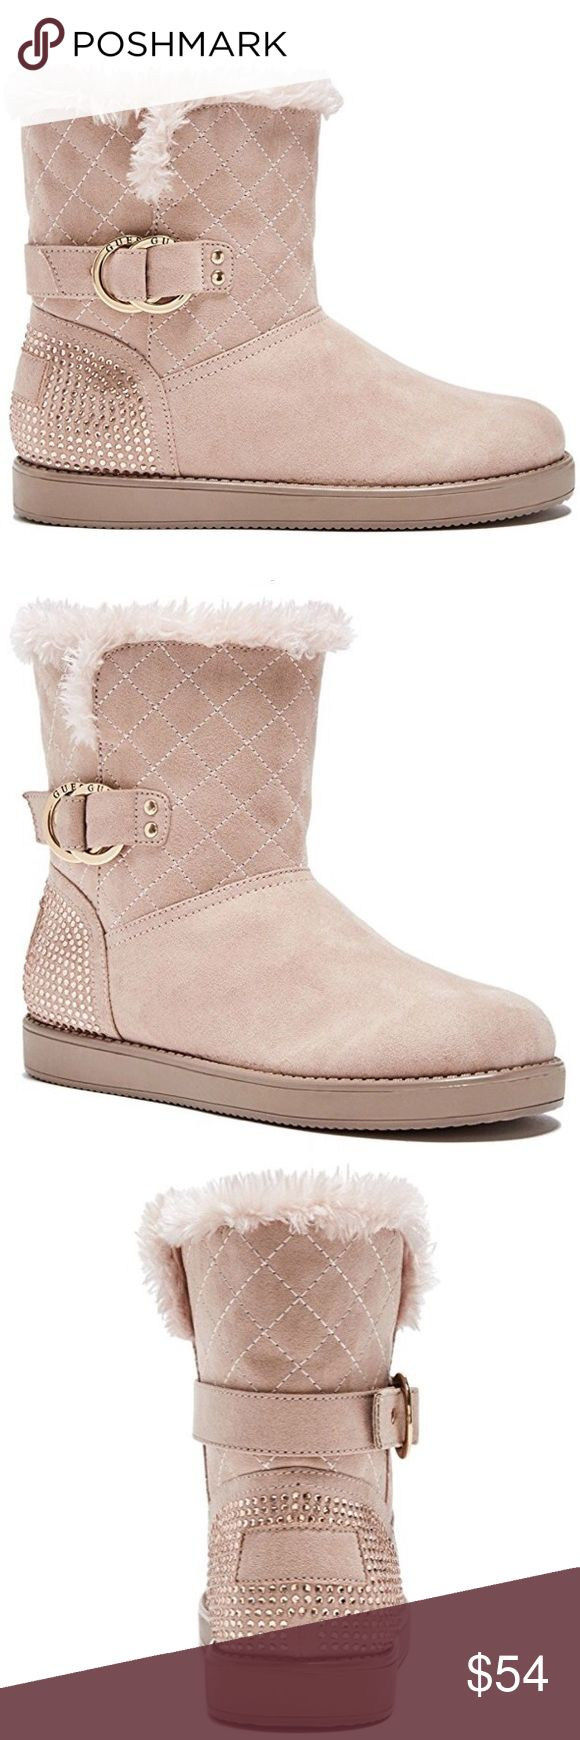 Guess rhinestone embellished light pink fur boots Soft faux shearling fur lined boots. Sparkling rhinestones decorate the heel. New in box More pics coming Guess Shoes Ankle Boots & Booties